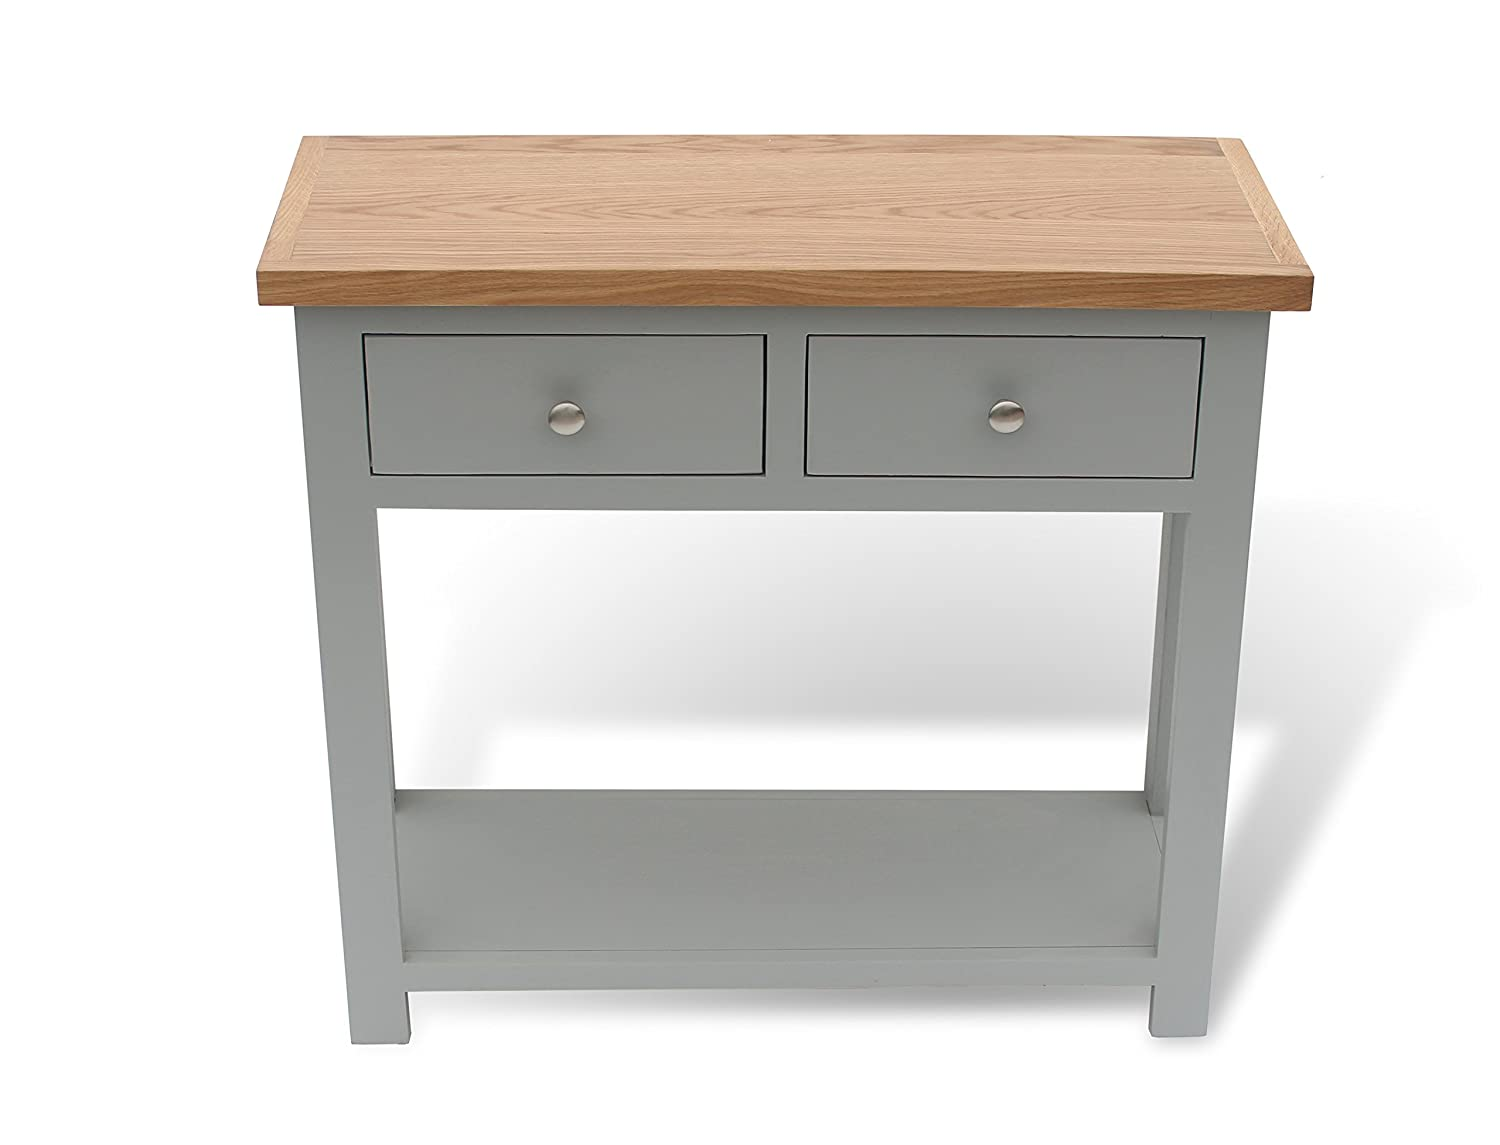 f2e03fb50539 GREYSTOKE PAINTED OAK CONSOLE TABLE HALL TABLE SOLID WOOD TELEPHONE TABLE    2 DRAWER  Amazon.co.uk  Kitchen   Home